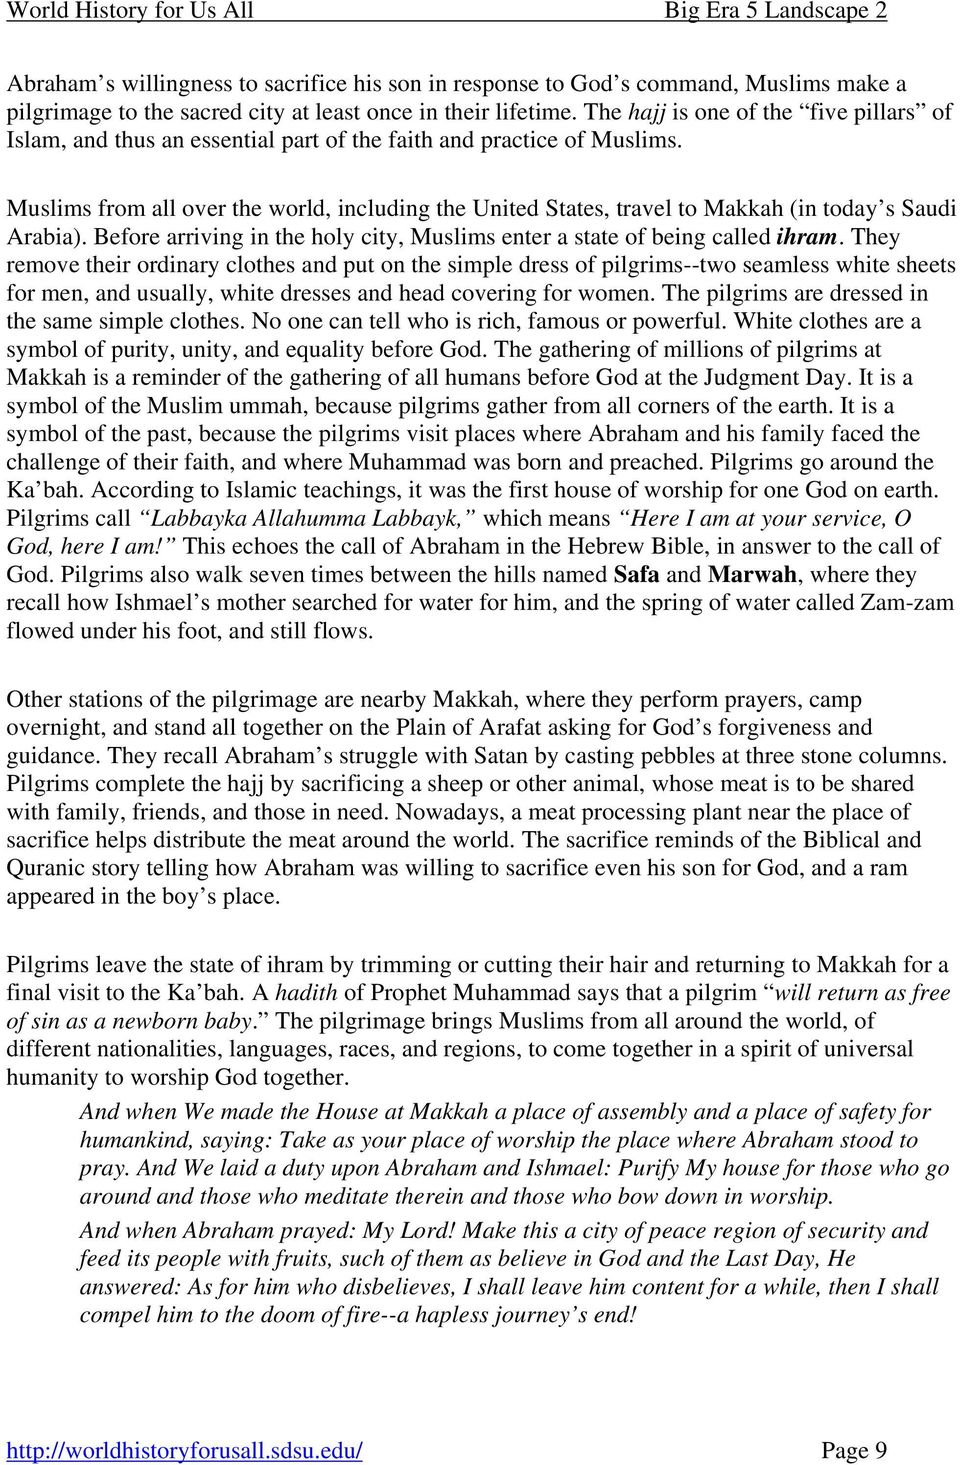 Lesson 1 Student Handout 1 1 Islamic Beliefs And Practices Pdf Free Download